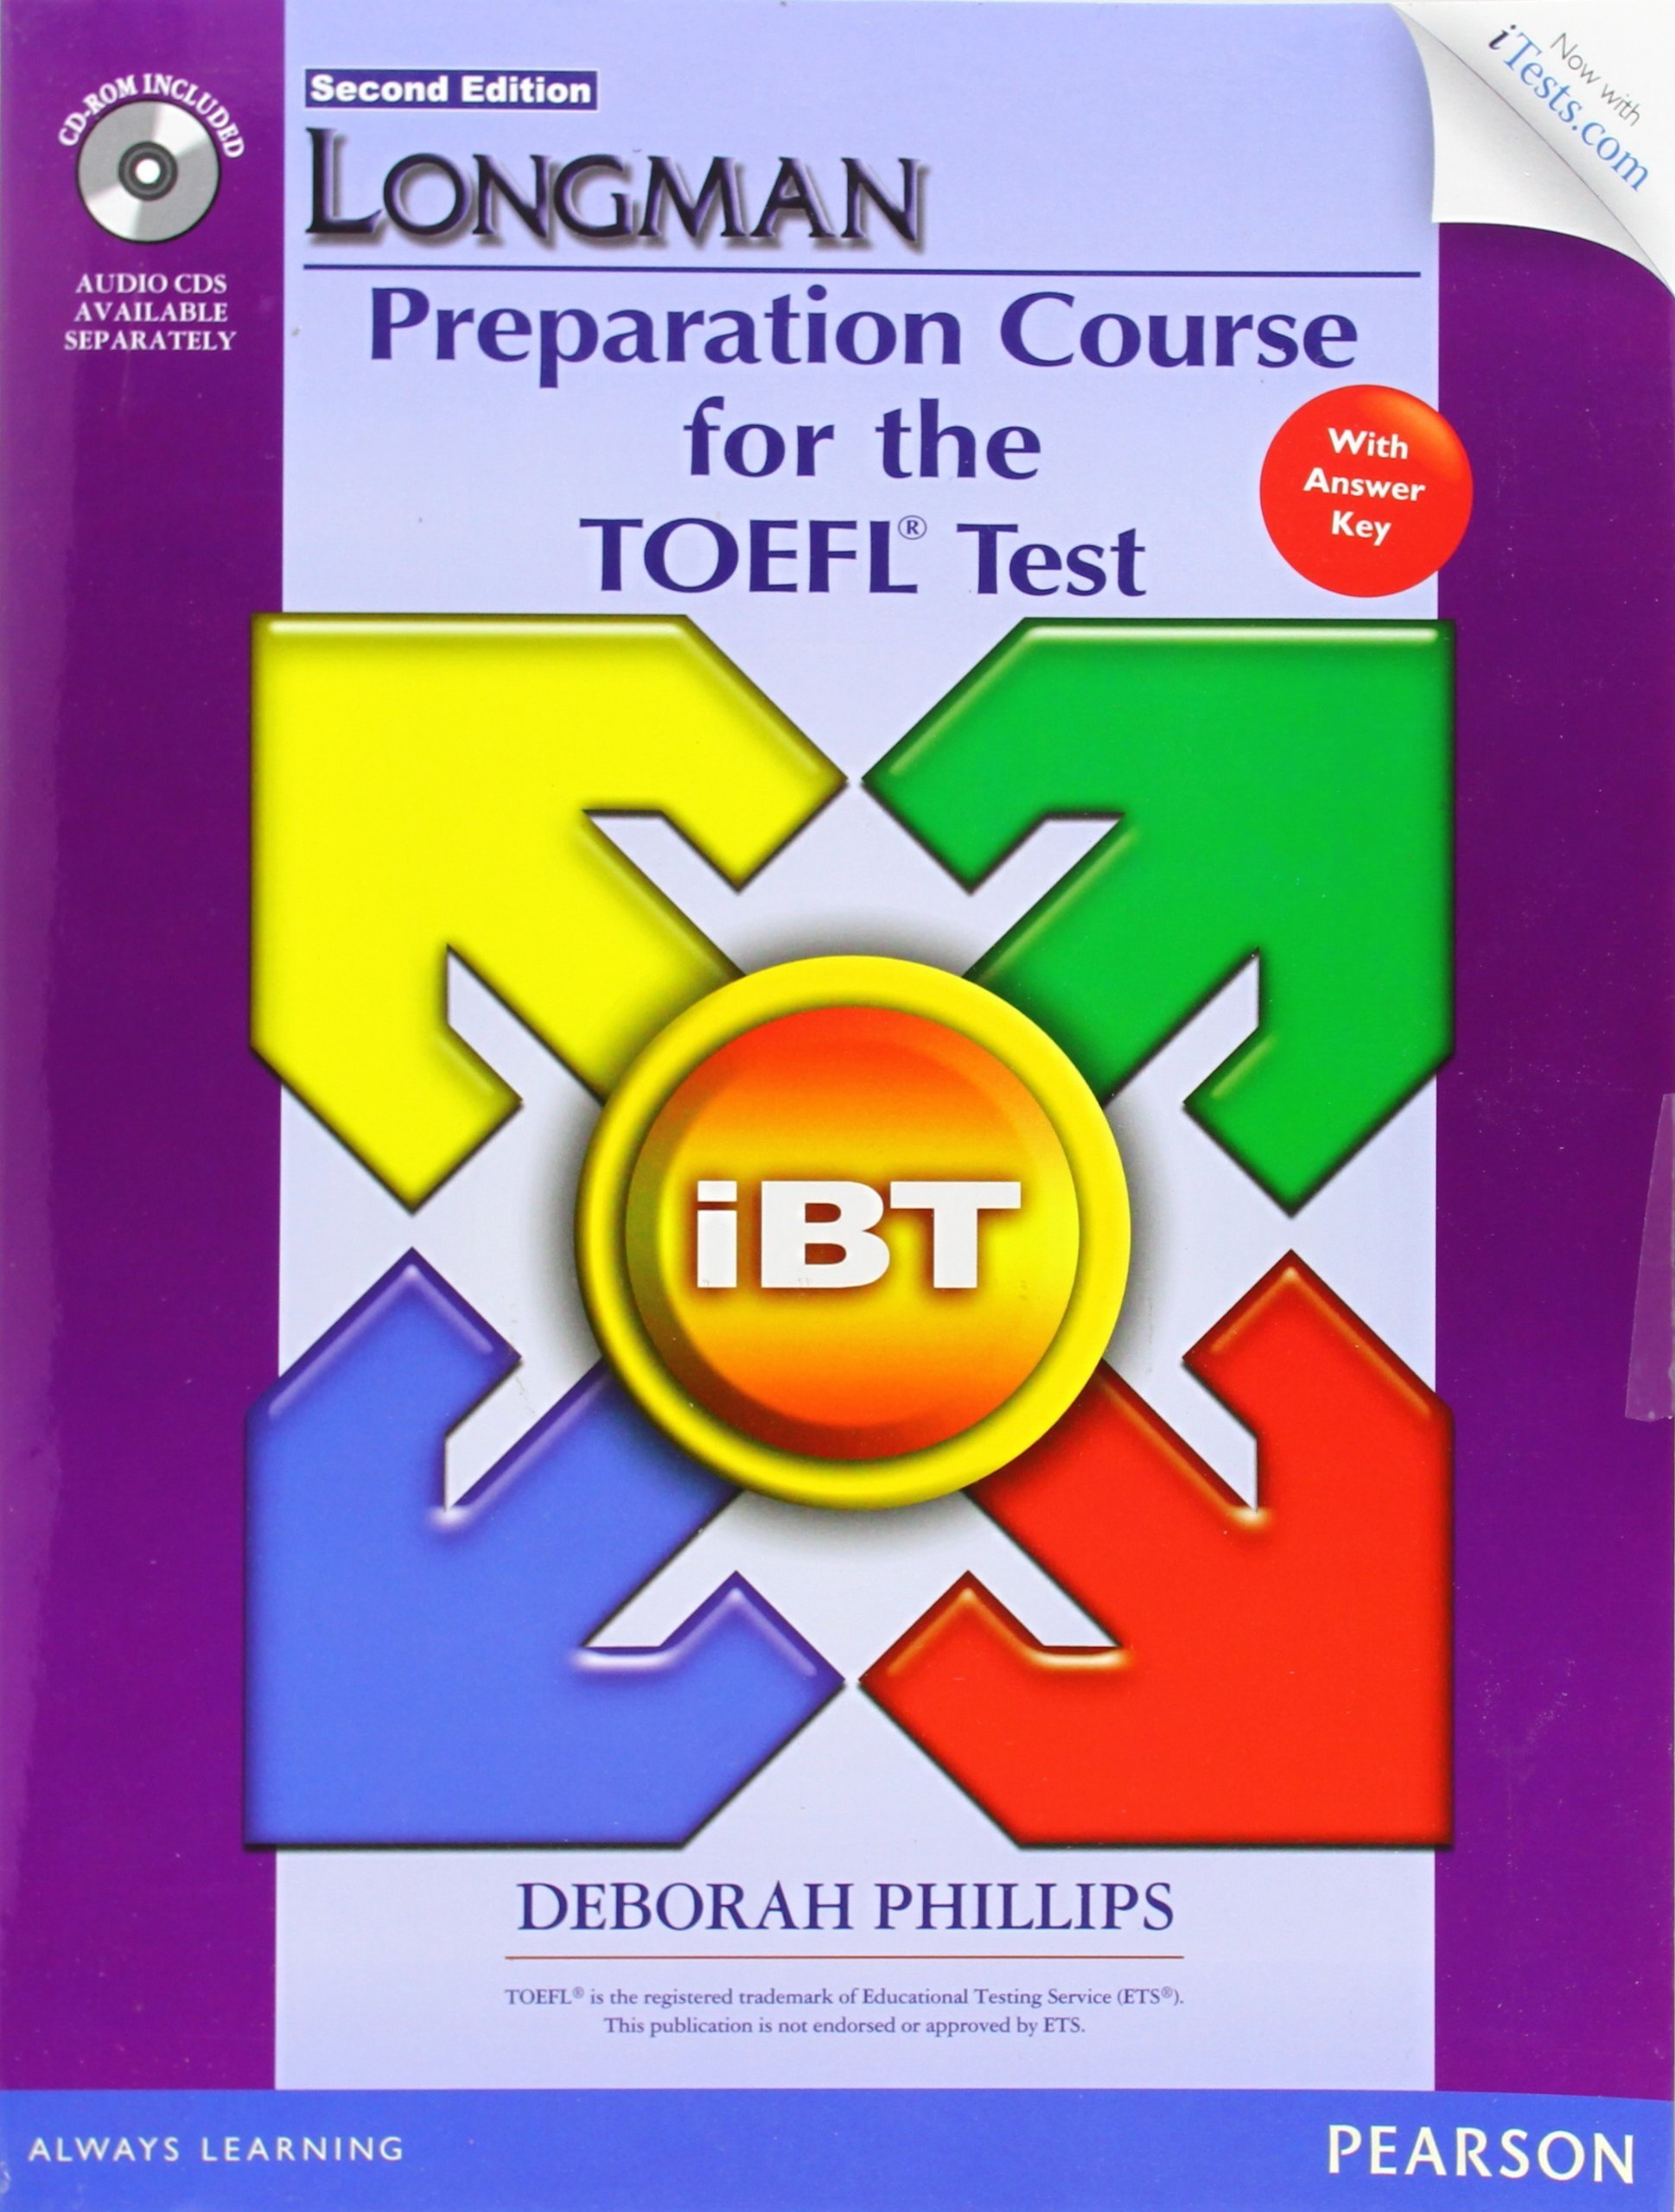 toefl writing topics 2012 Answers to all toefl essay questions topic 46 important qualities of a good son or daughter 135 topic 46 important qualities of a good son or daughter 136 topic 47 a large company vs a small company 137 topic 47 a large company vs a small company 138 topic 48 why people work 139.